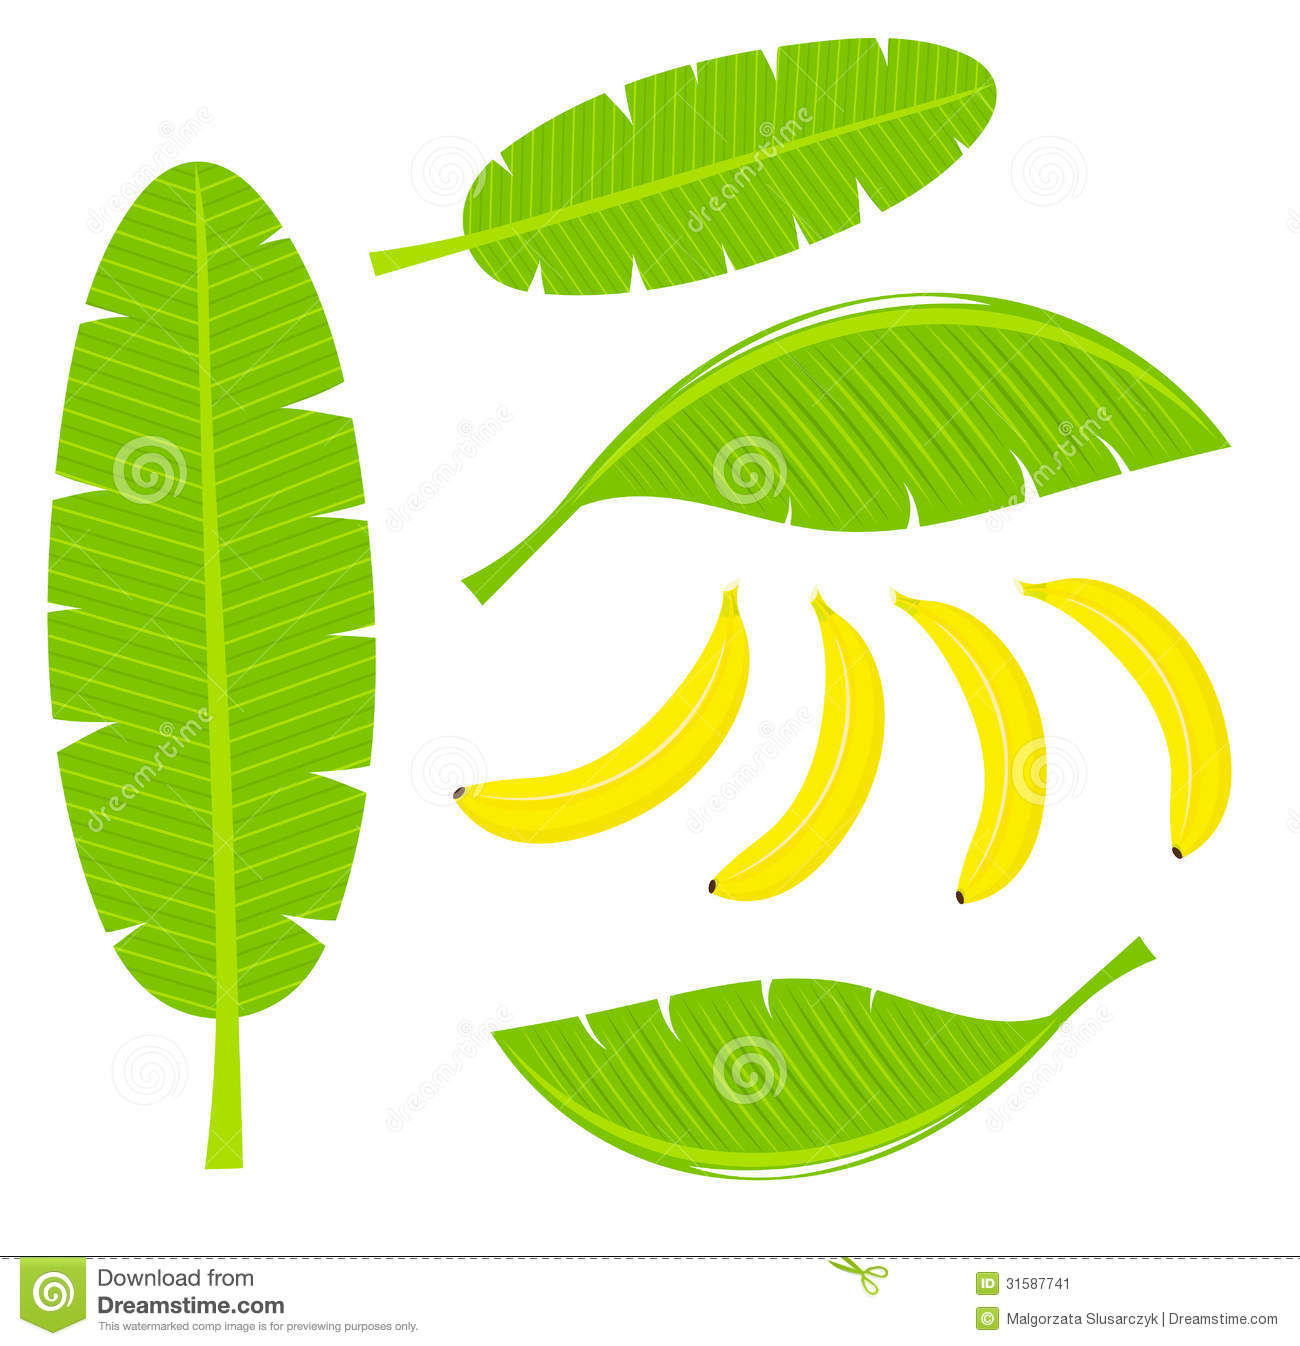 Banana leaves and fruits. Vector illustration.